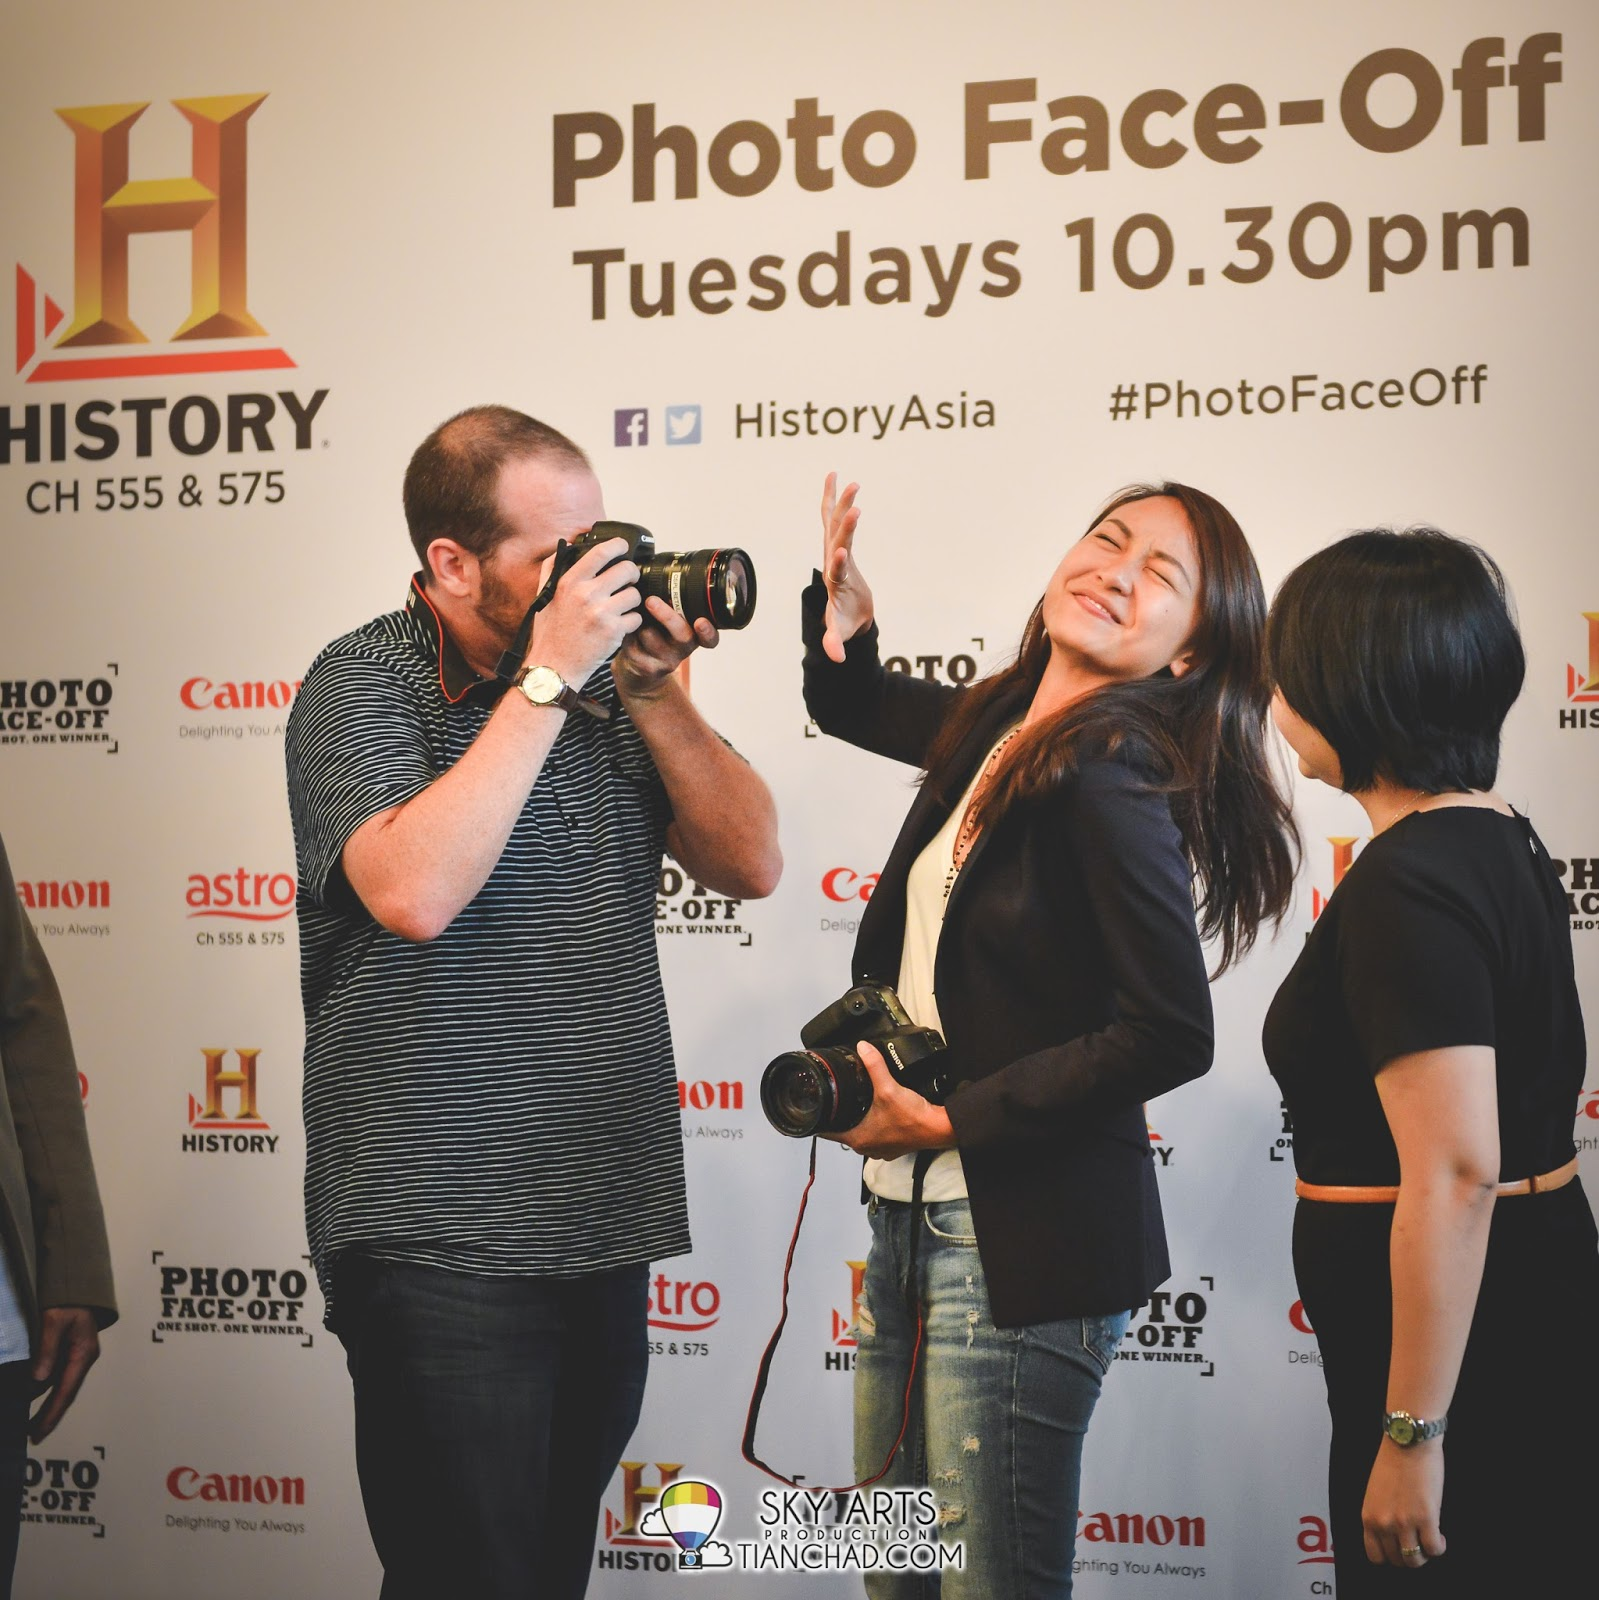 Photo Face-Off with Justin Mott and Christy Yeoh on HISTORY